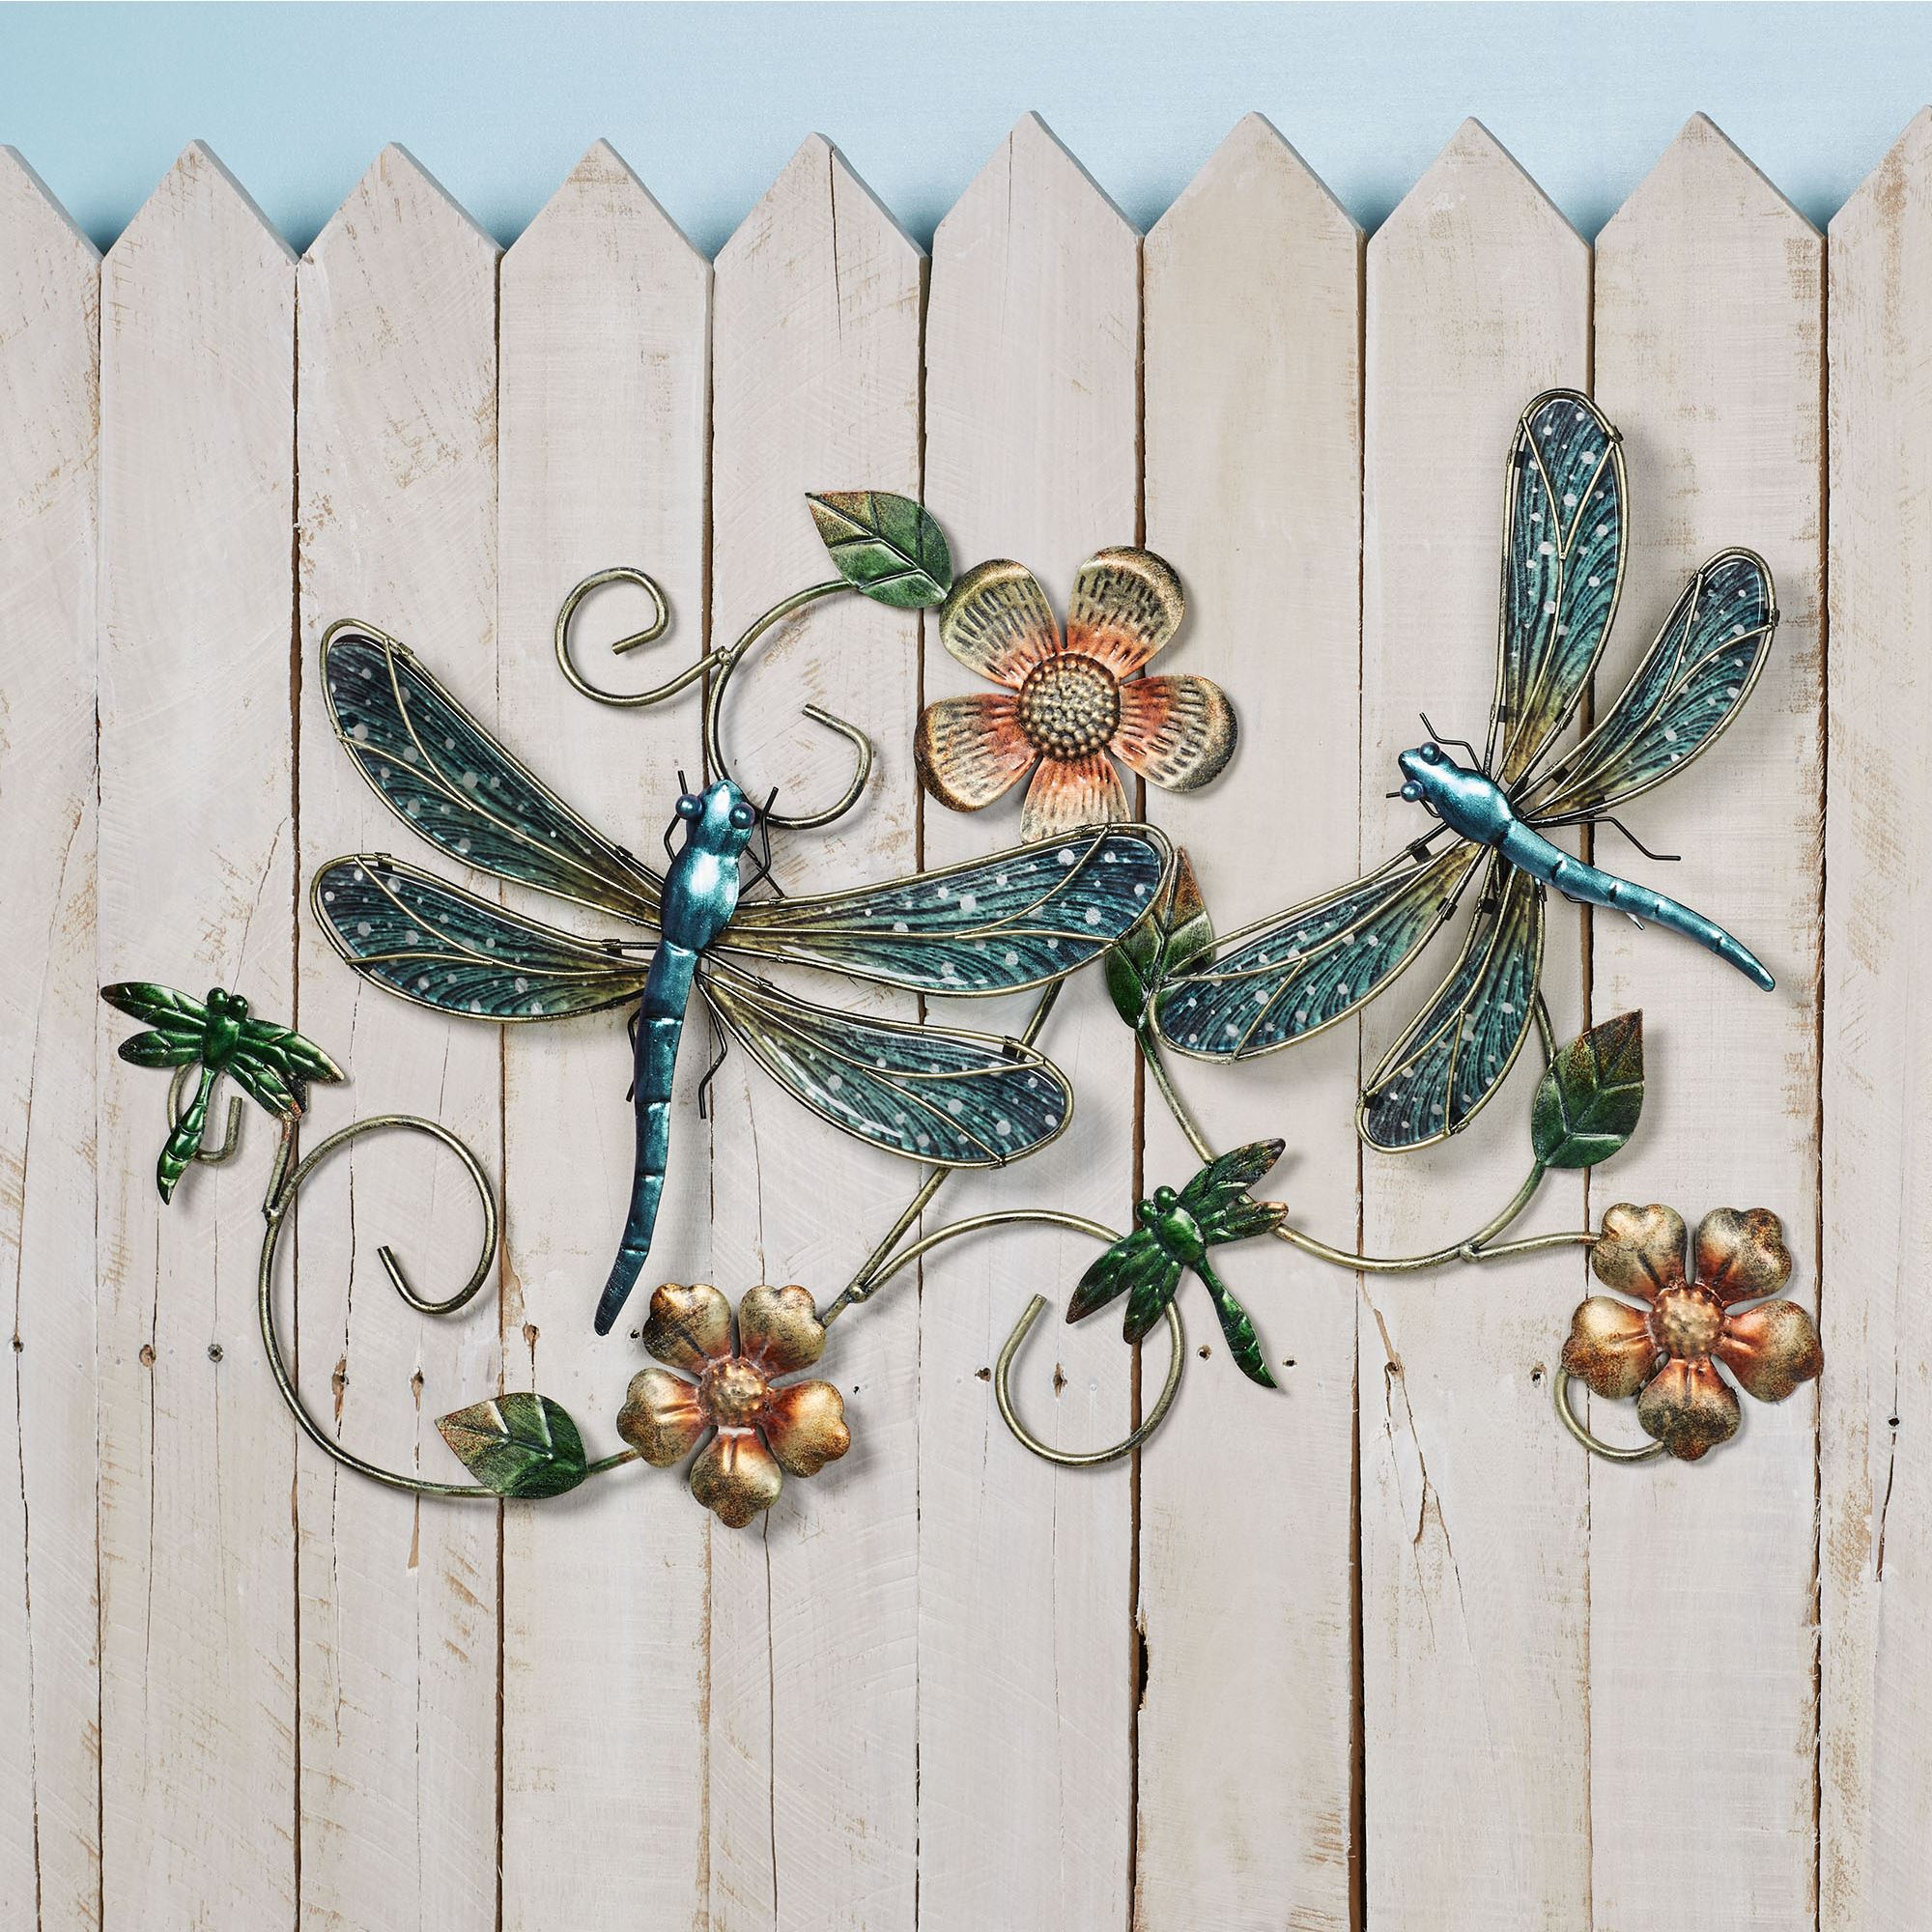 Outdoor Indoor Finia-Finley Metal Dragonfly Wall Decor Blue Mosaic Glass Art Sculpture Hanging Decorations for Home Bedroom Garden